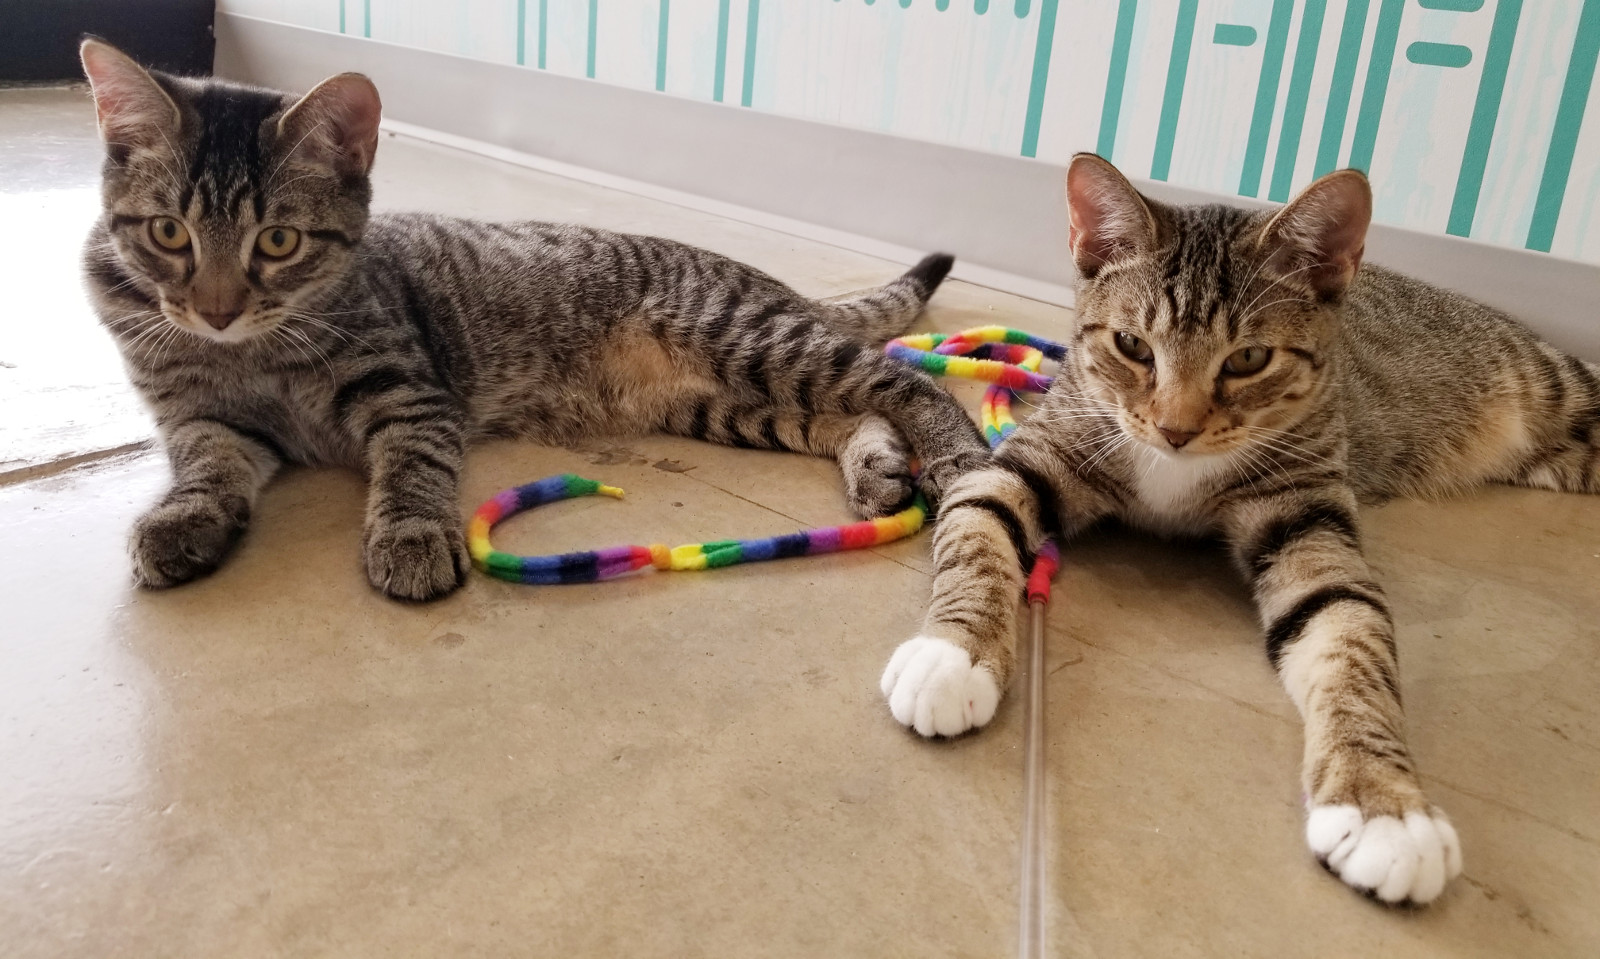 Wheels and Waffle, adoptable tabby cats